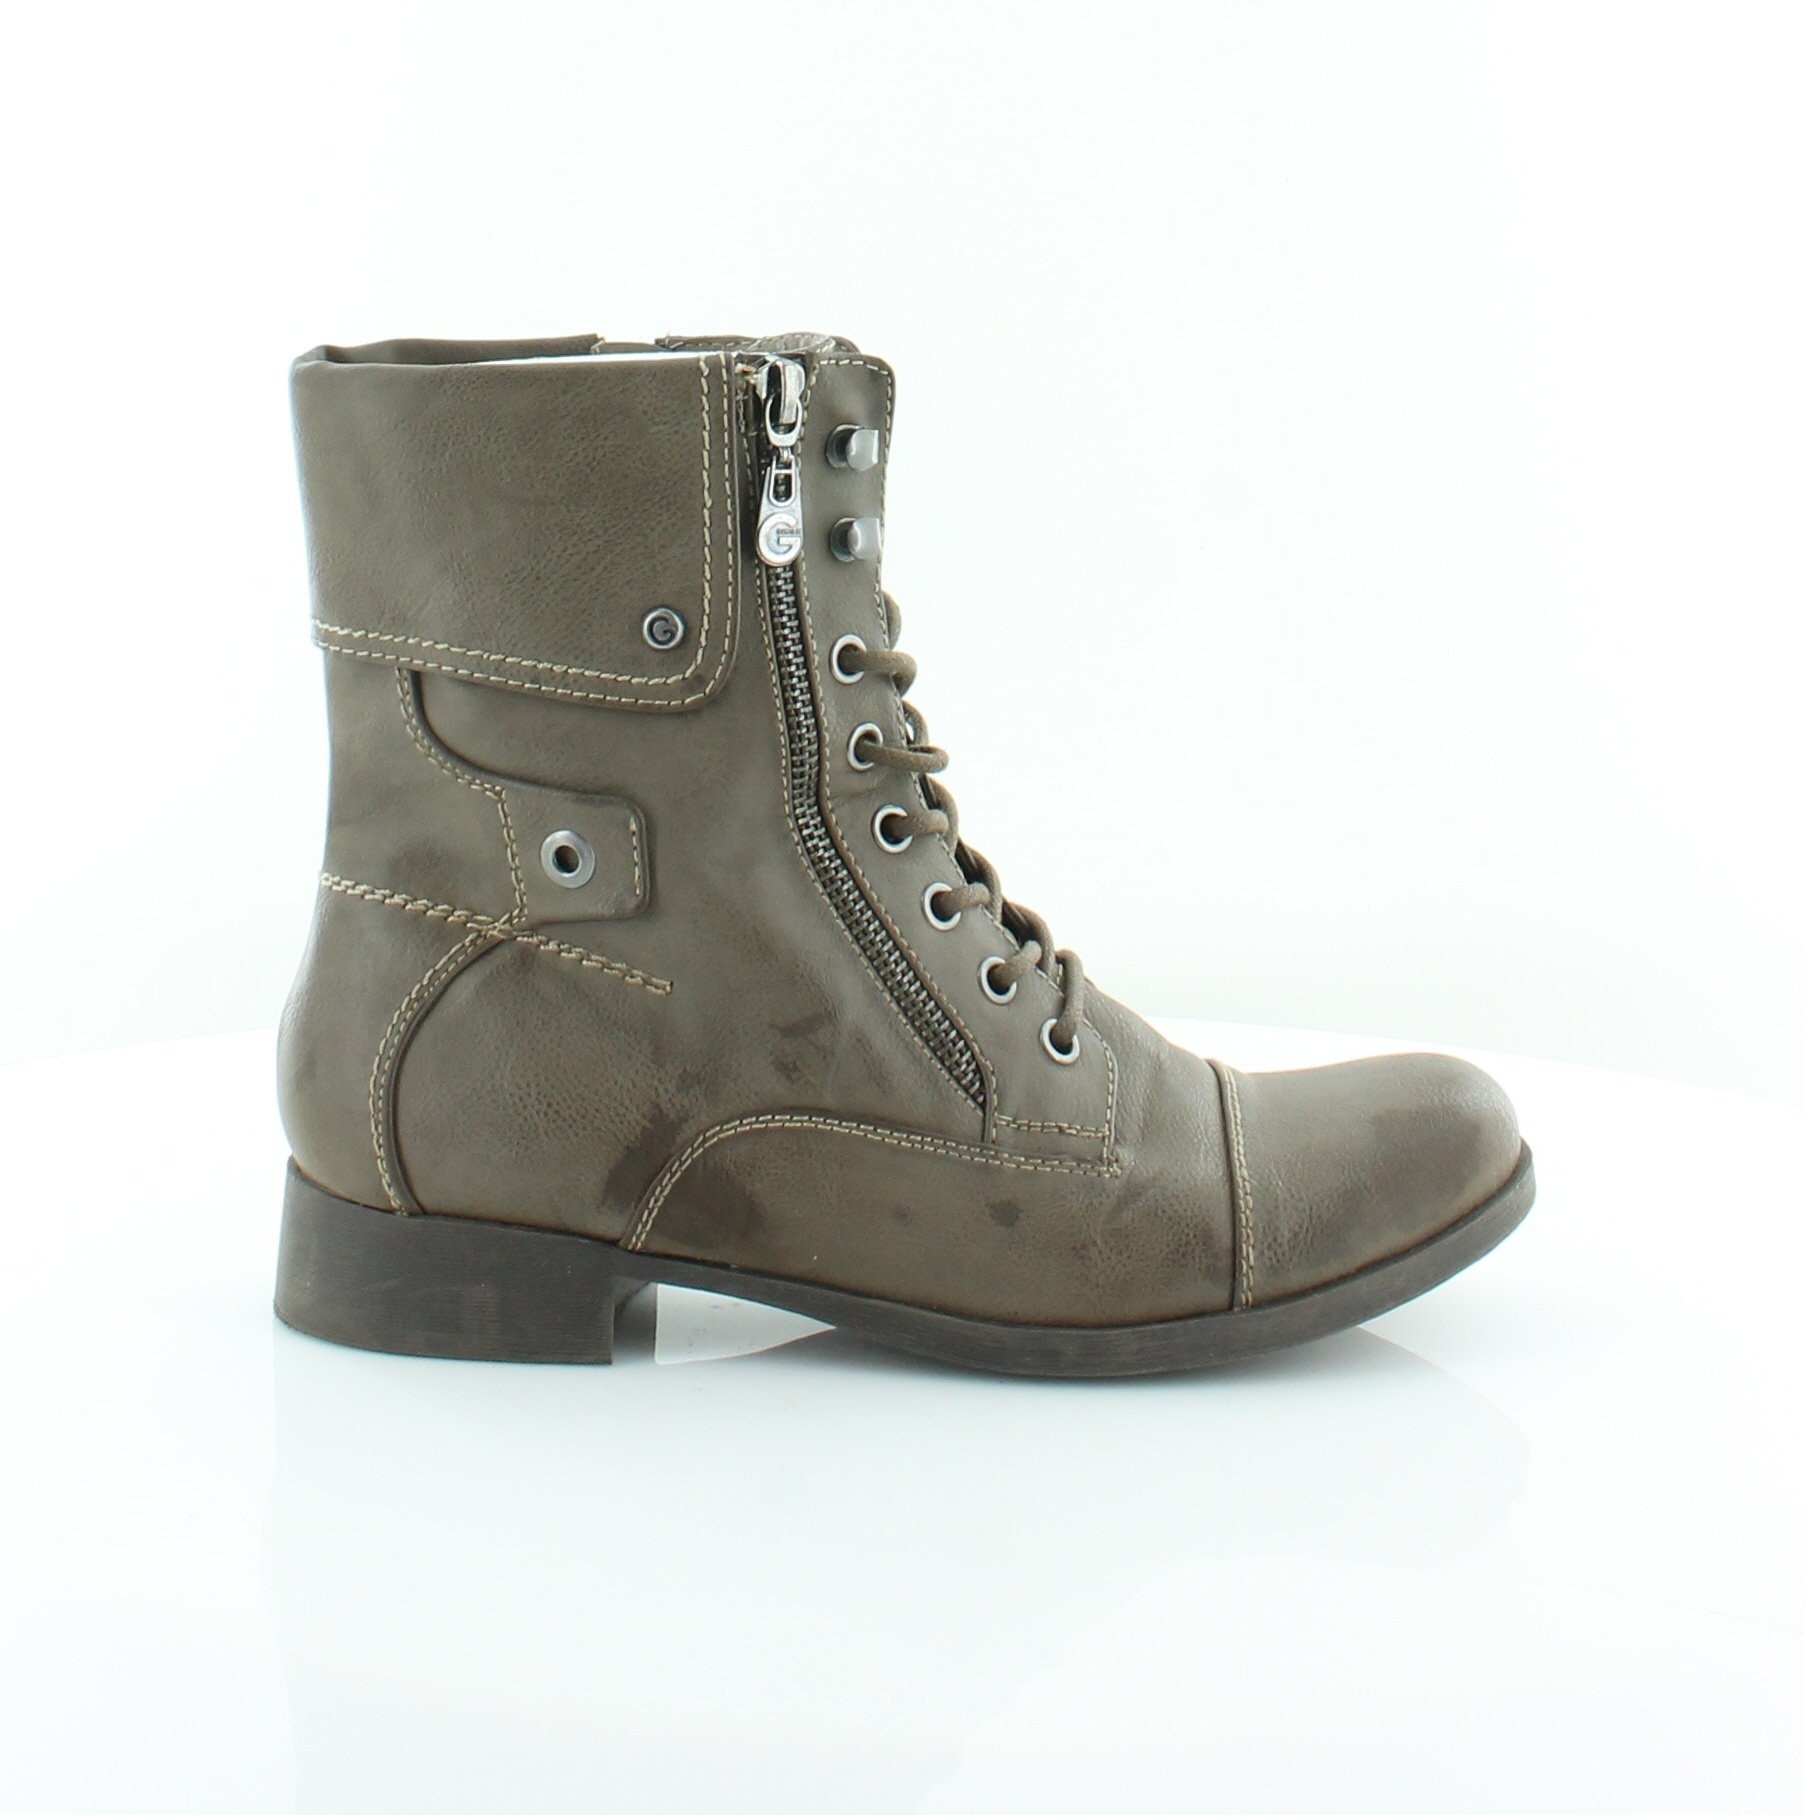 G by Guess Banks Women's Boots Taupe Size 7.5 M